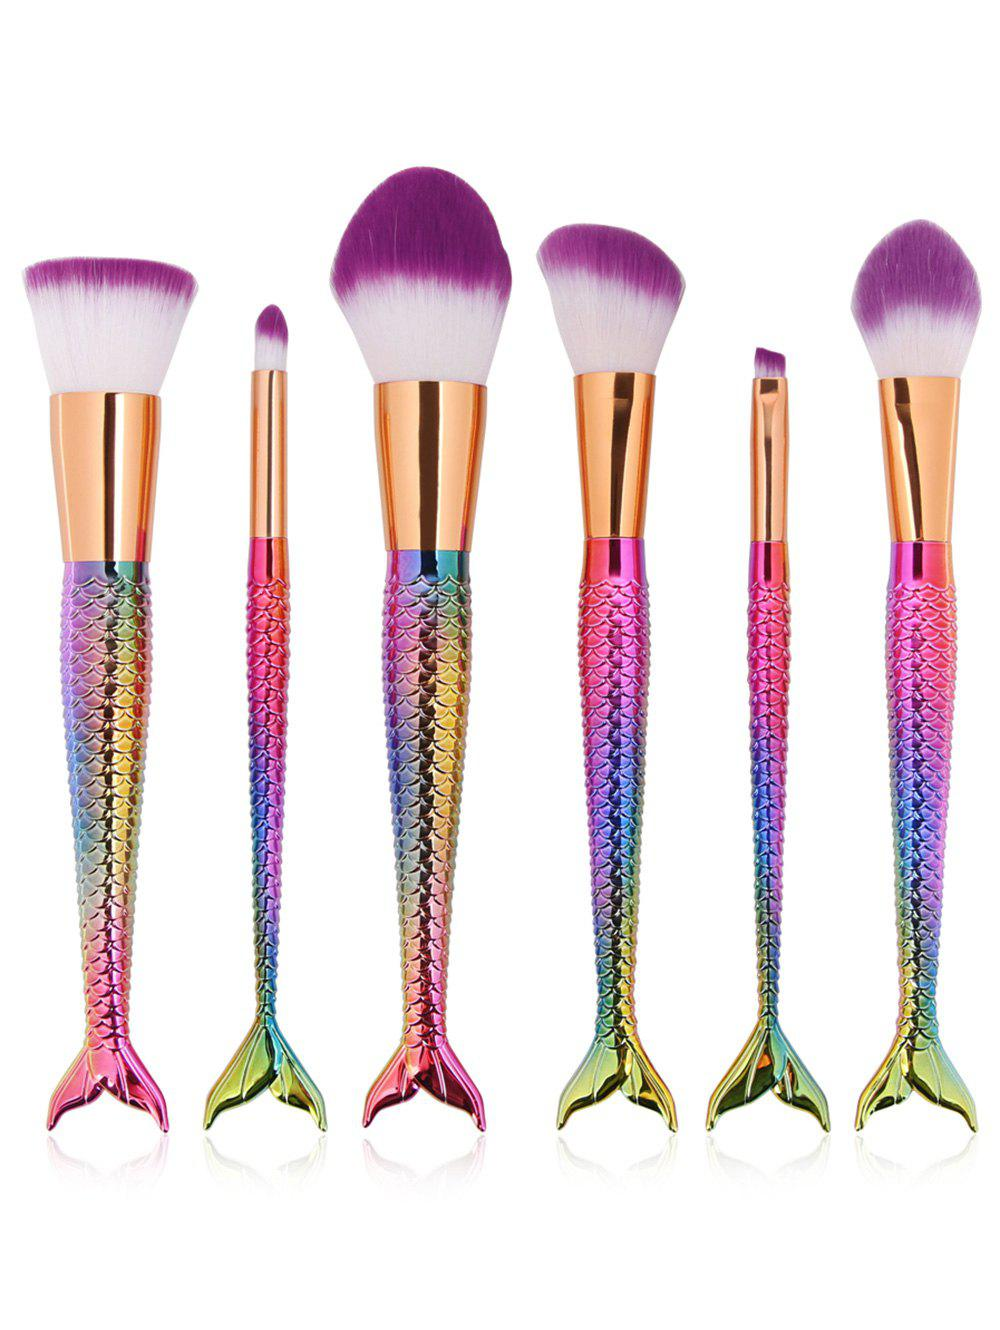 6 Pcs Mermaid Design Multipurpose Makeup Brushes Kit - DAZZLING